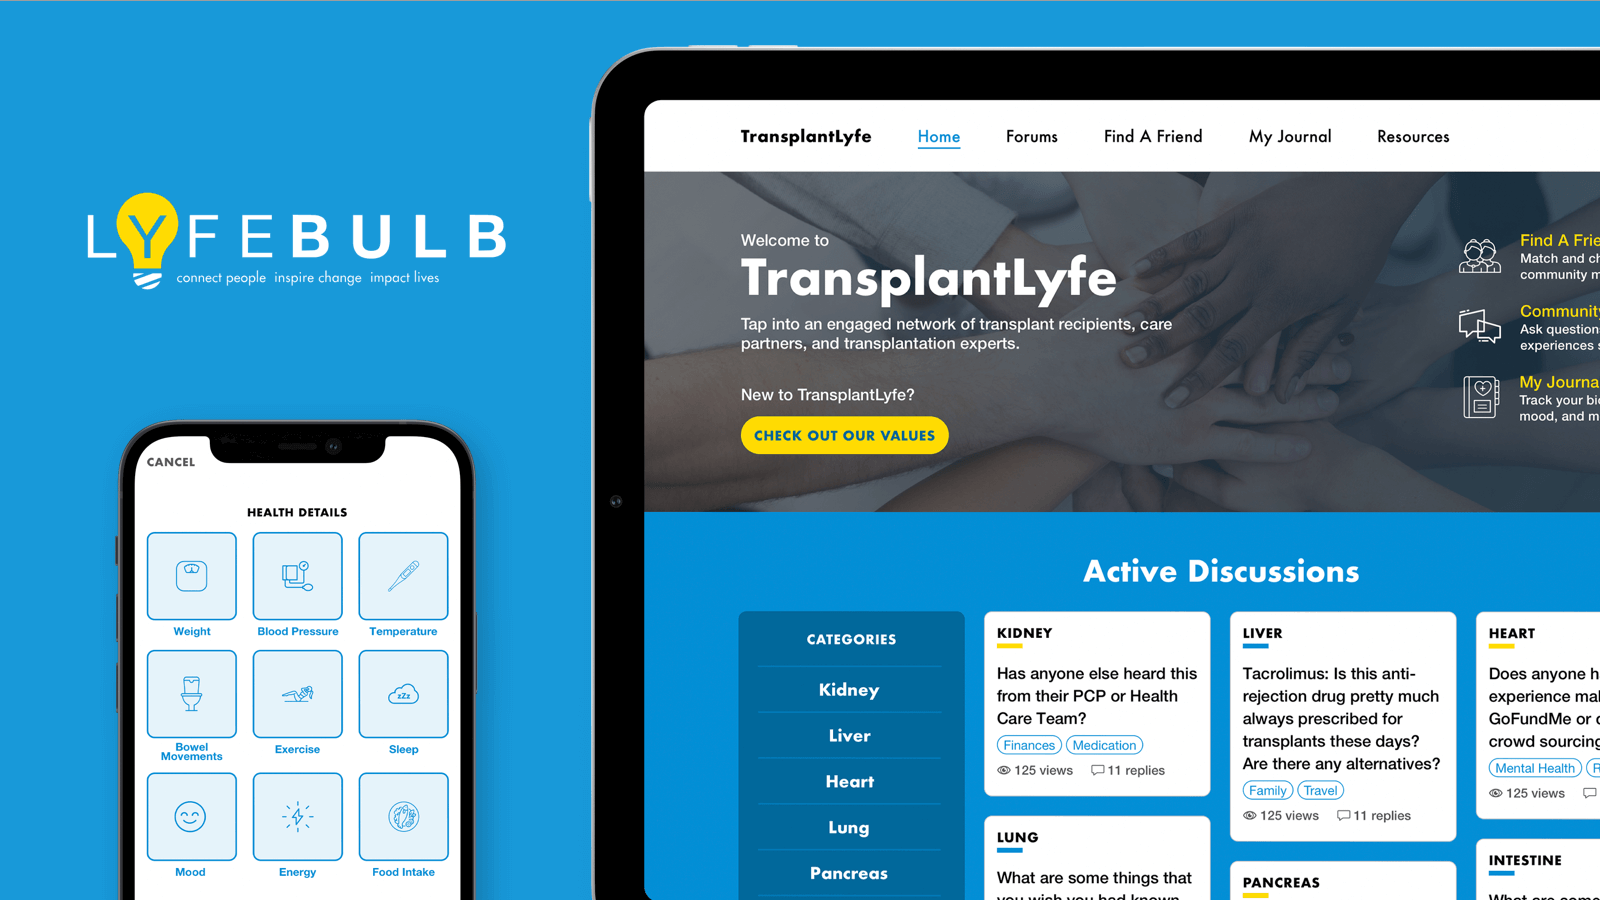 Images of Lyfbulb app and features on mobile devices